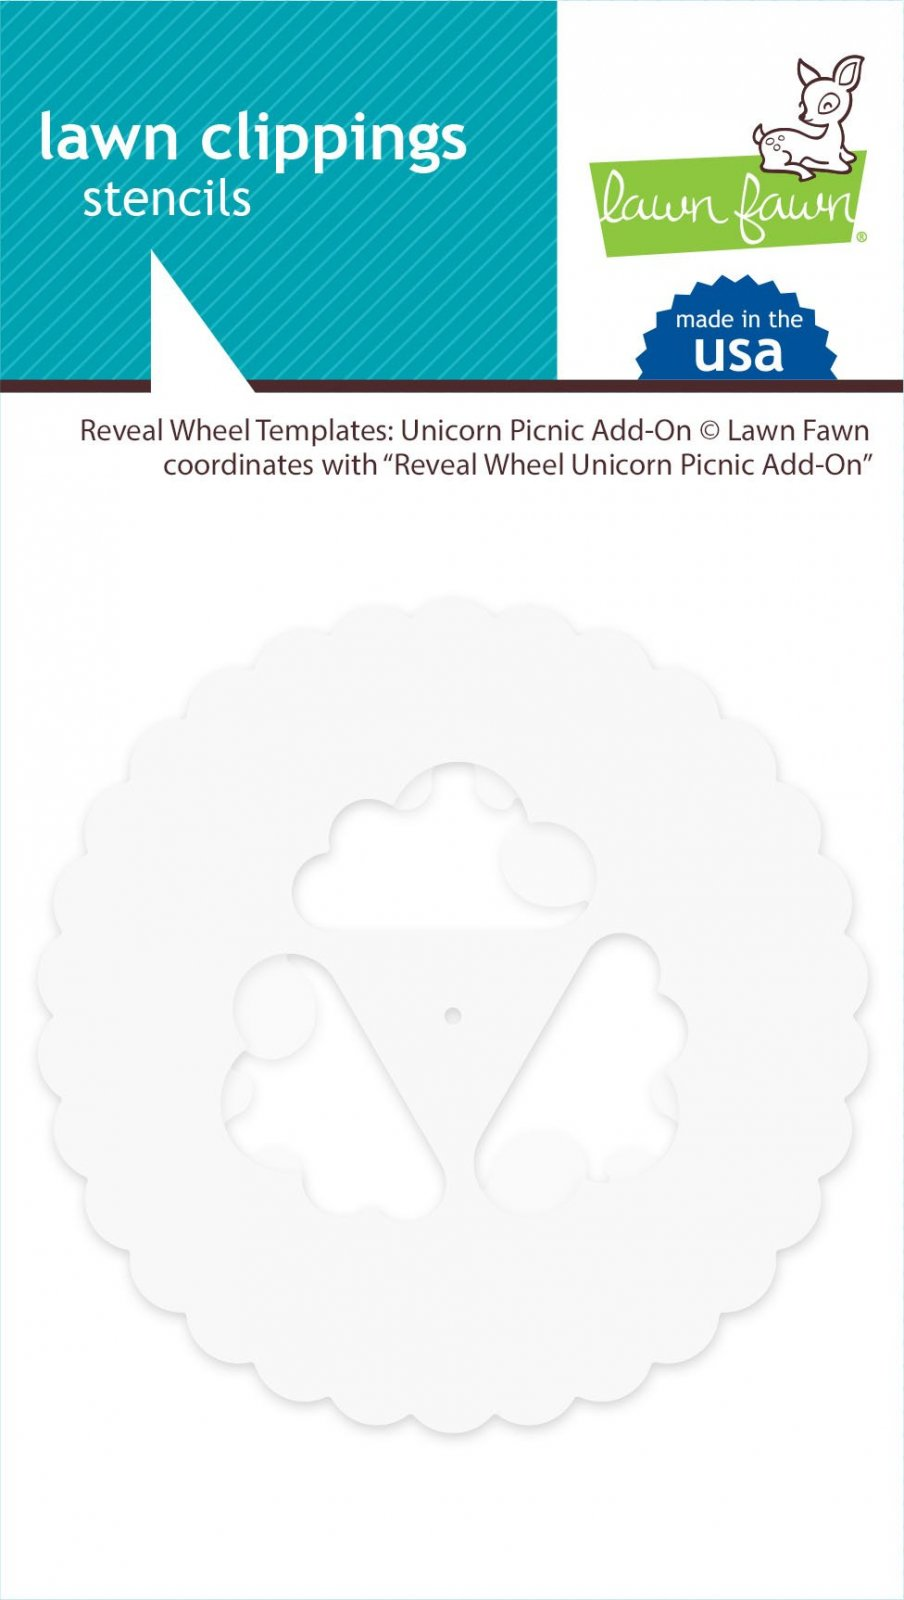 Lawn Fawn - Unicorn Picnic Reveal Wheel Template